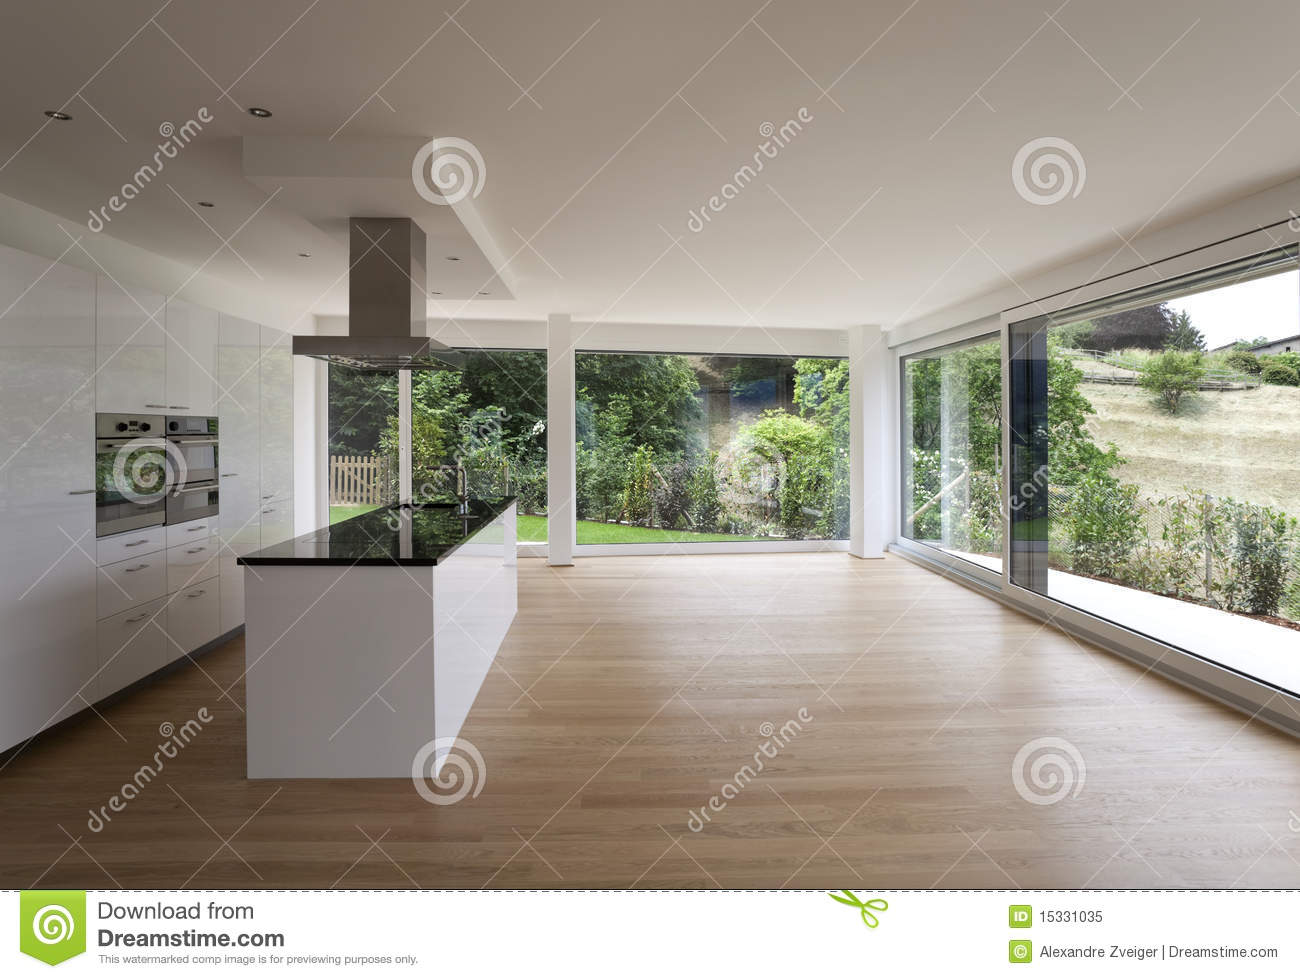 Bel int rieur d 39 une maison moderne image stock image 15331035 for Photos interieur maison moderne